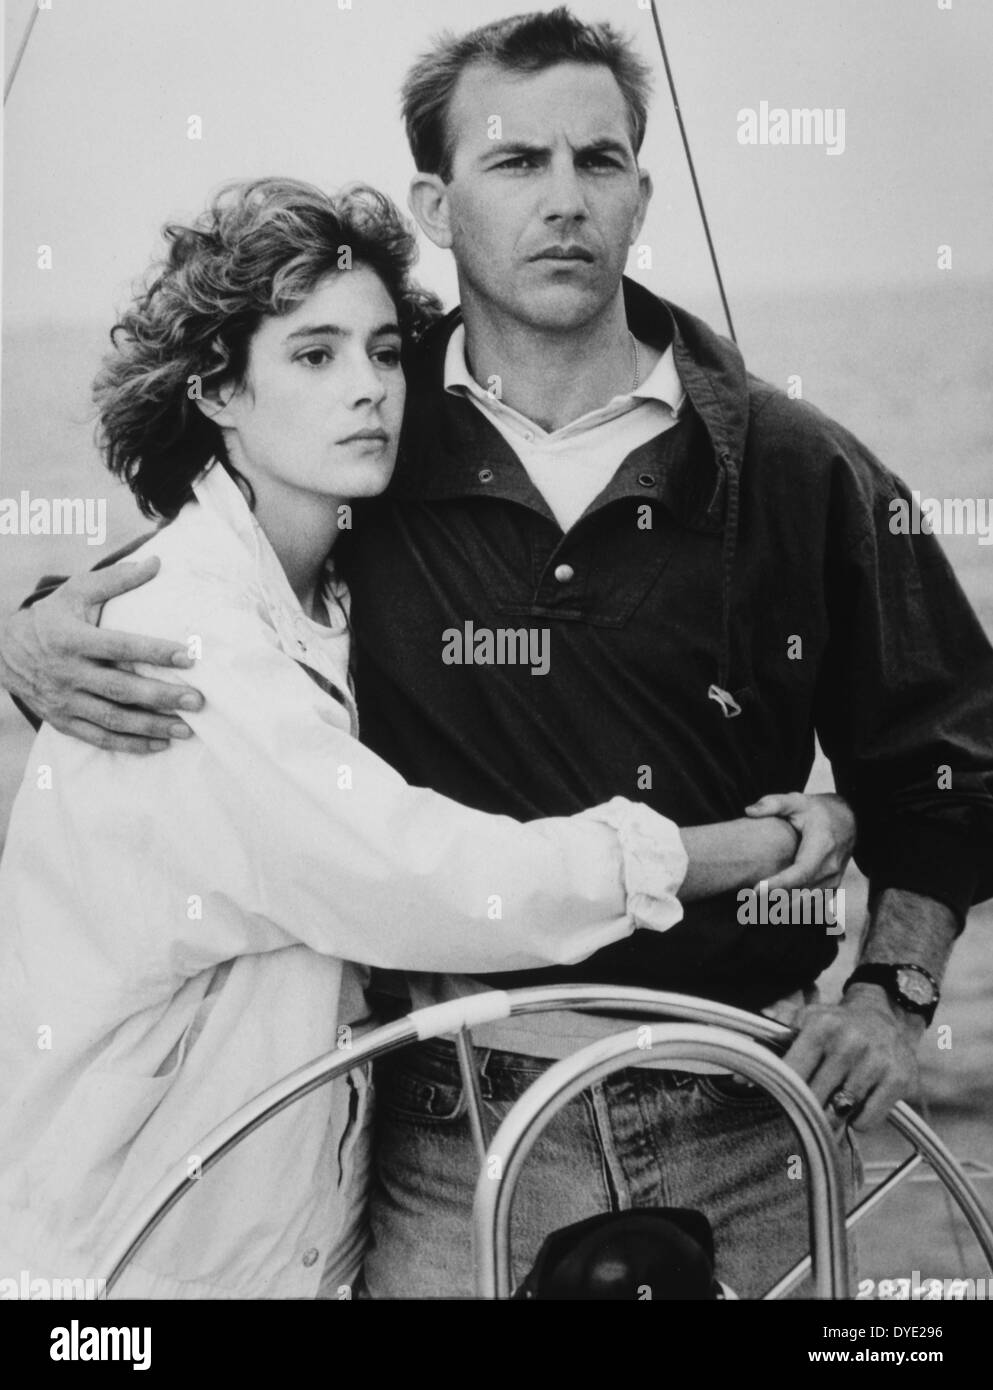 sean young and kevin costner on set of the film no way. Black Bedroom Furniture Sets. Home Design Ideas